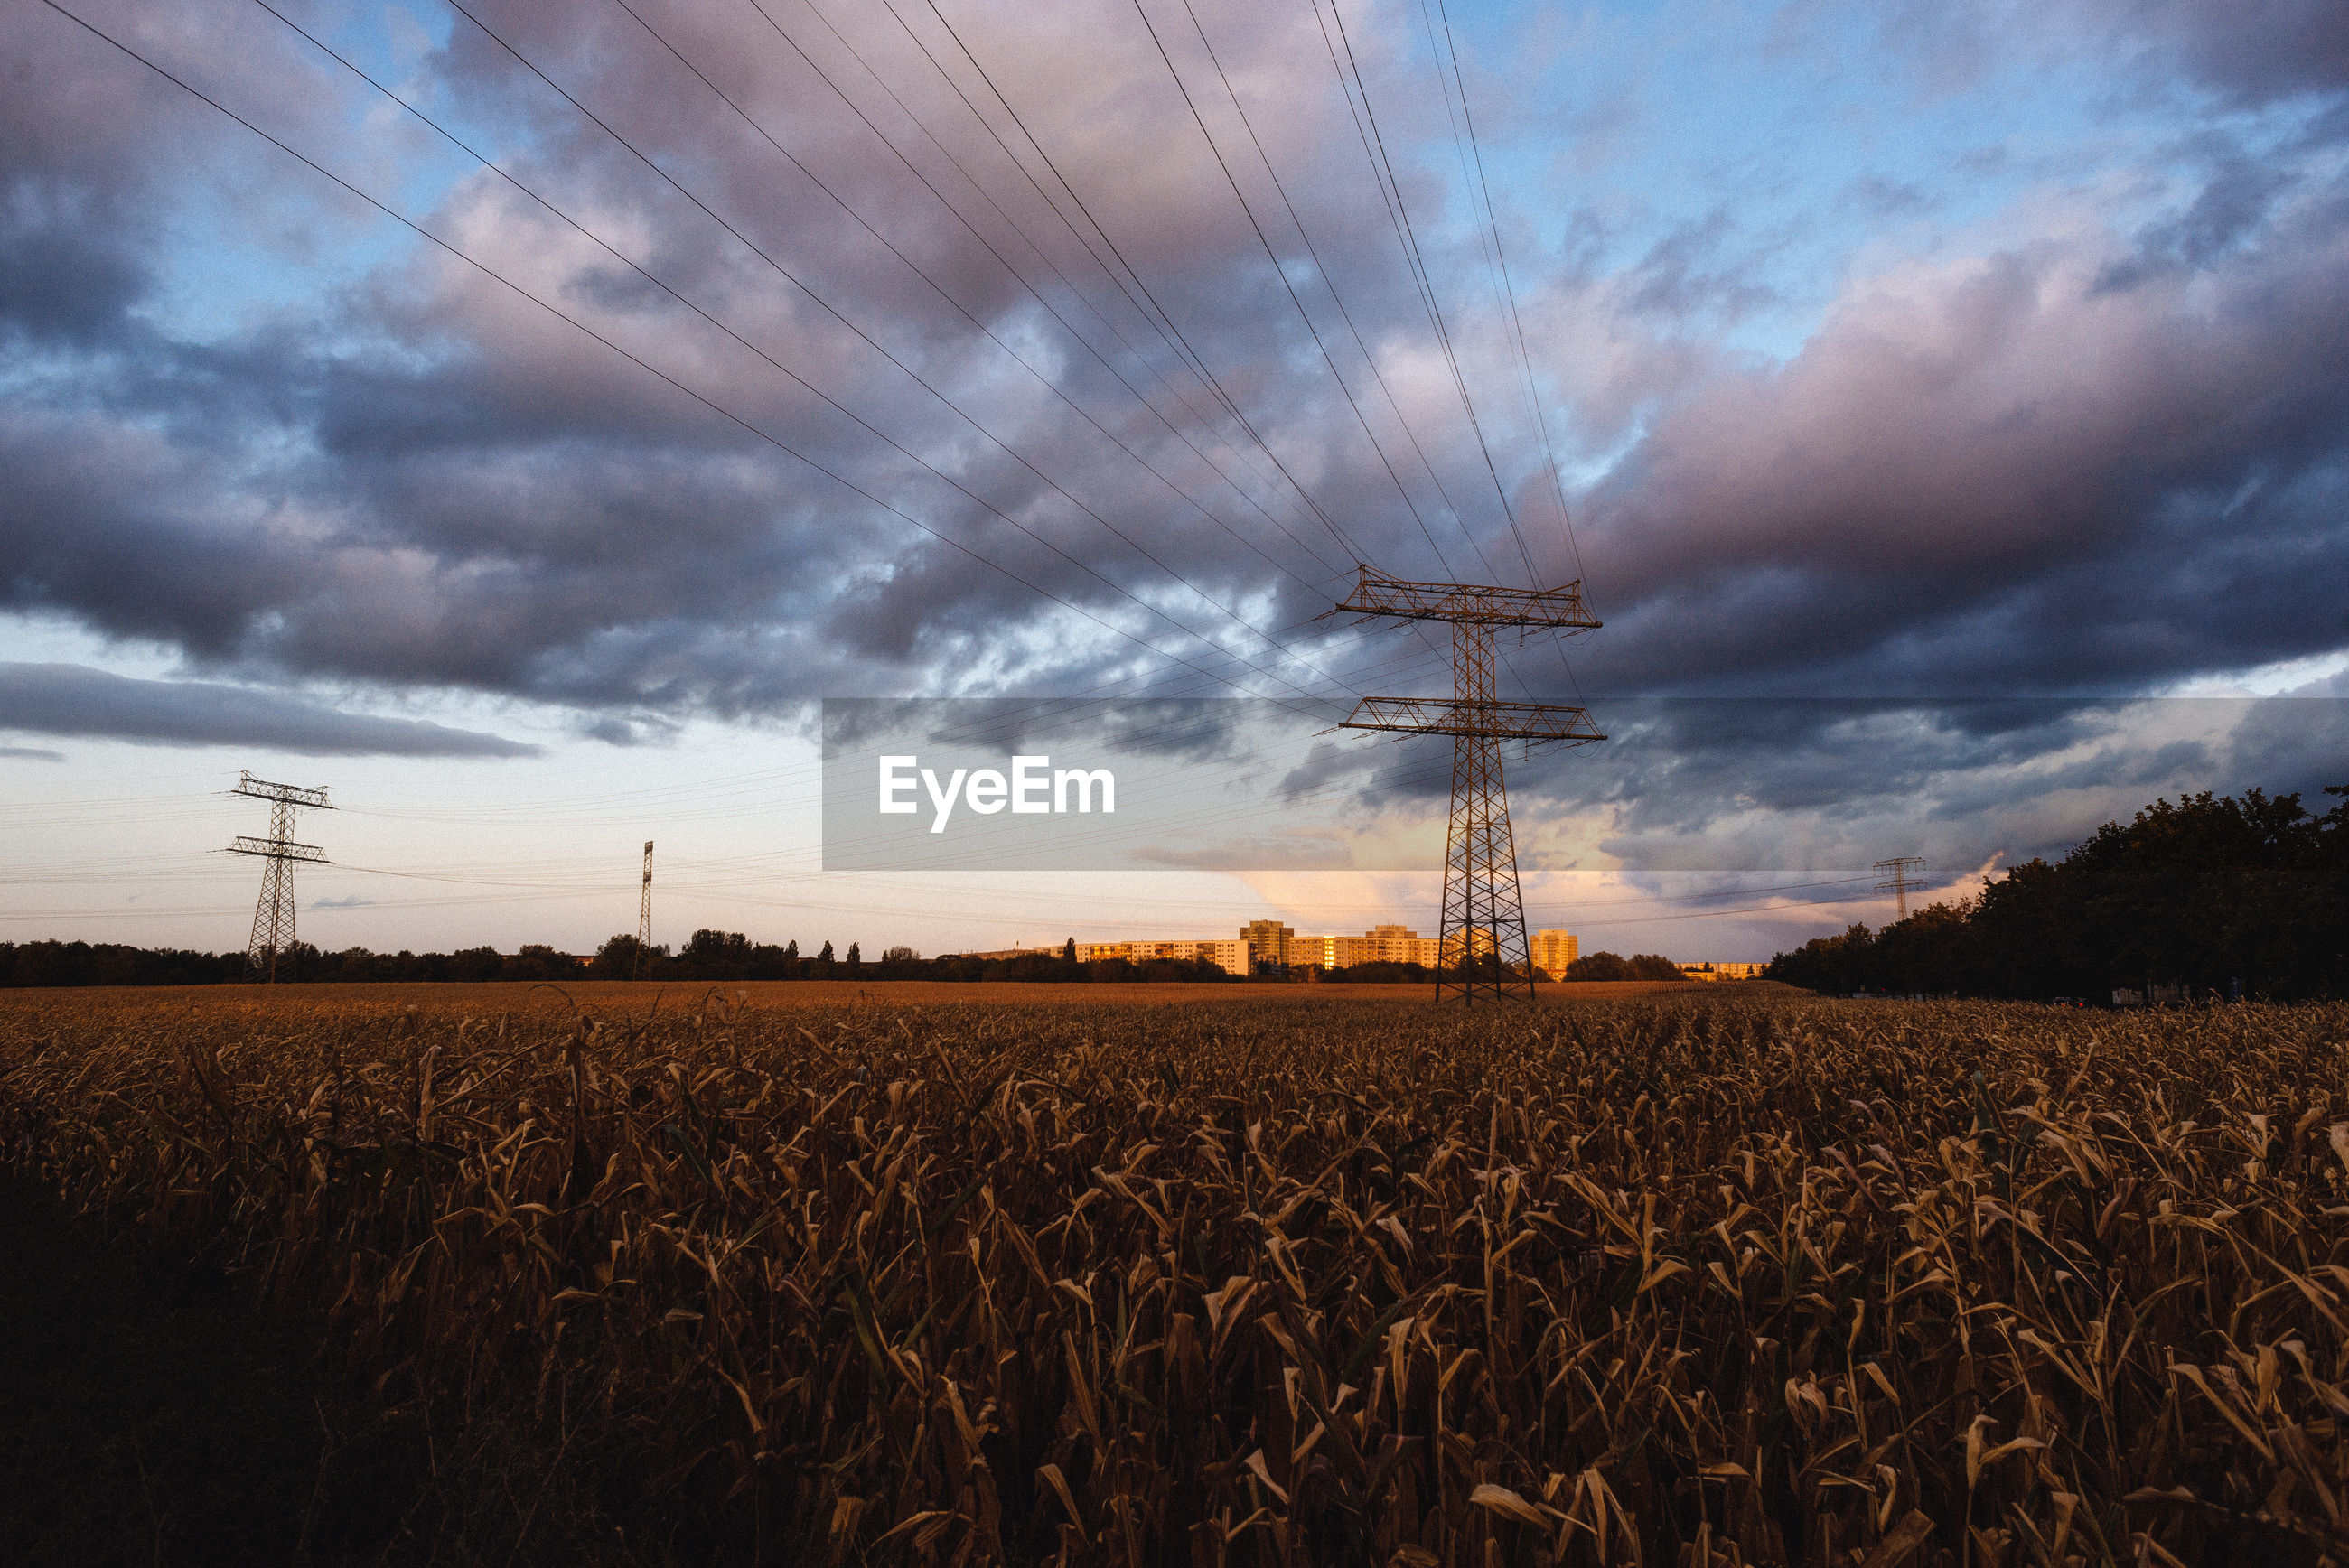 sky, cloud, landscape, electricity, environment, agriculture, power generation, field, horizon, land, technology, nature, power supply, electricity pylon, rural scene, crop, cable, sunset, plant, power line, cereal plant, beauty in nature, scenics - nature, no people, growth, sunlight, evening, dusk, dramatic sky, farm, outdoors, tranquility, business finance and industry, tree, cloudscape, tranquil scene, barley, wheat